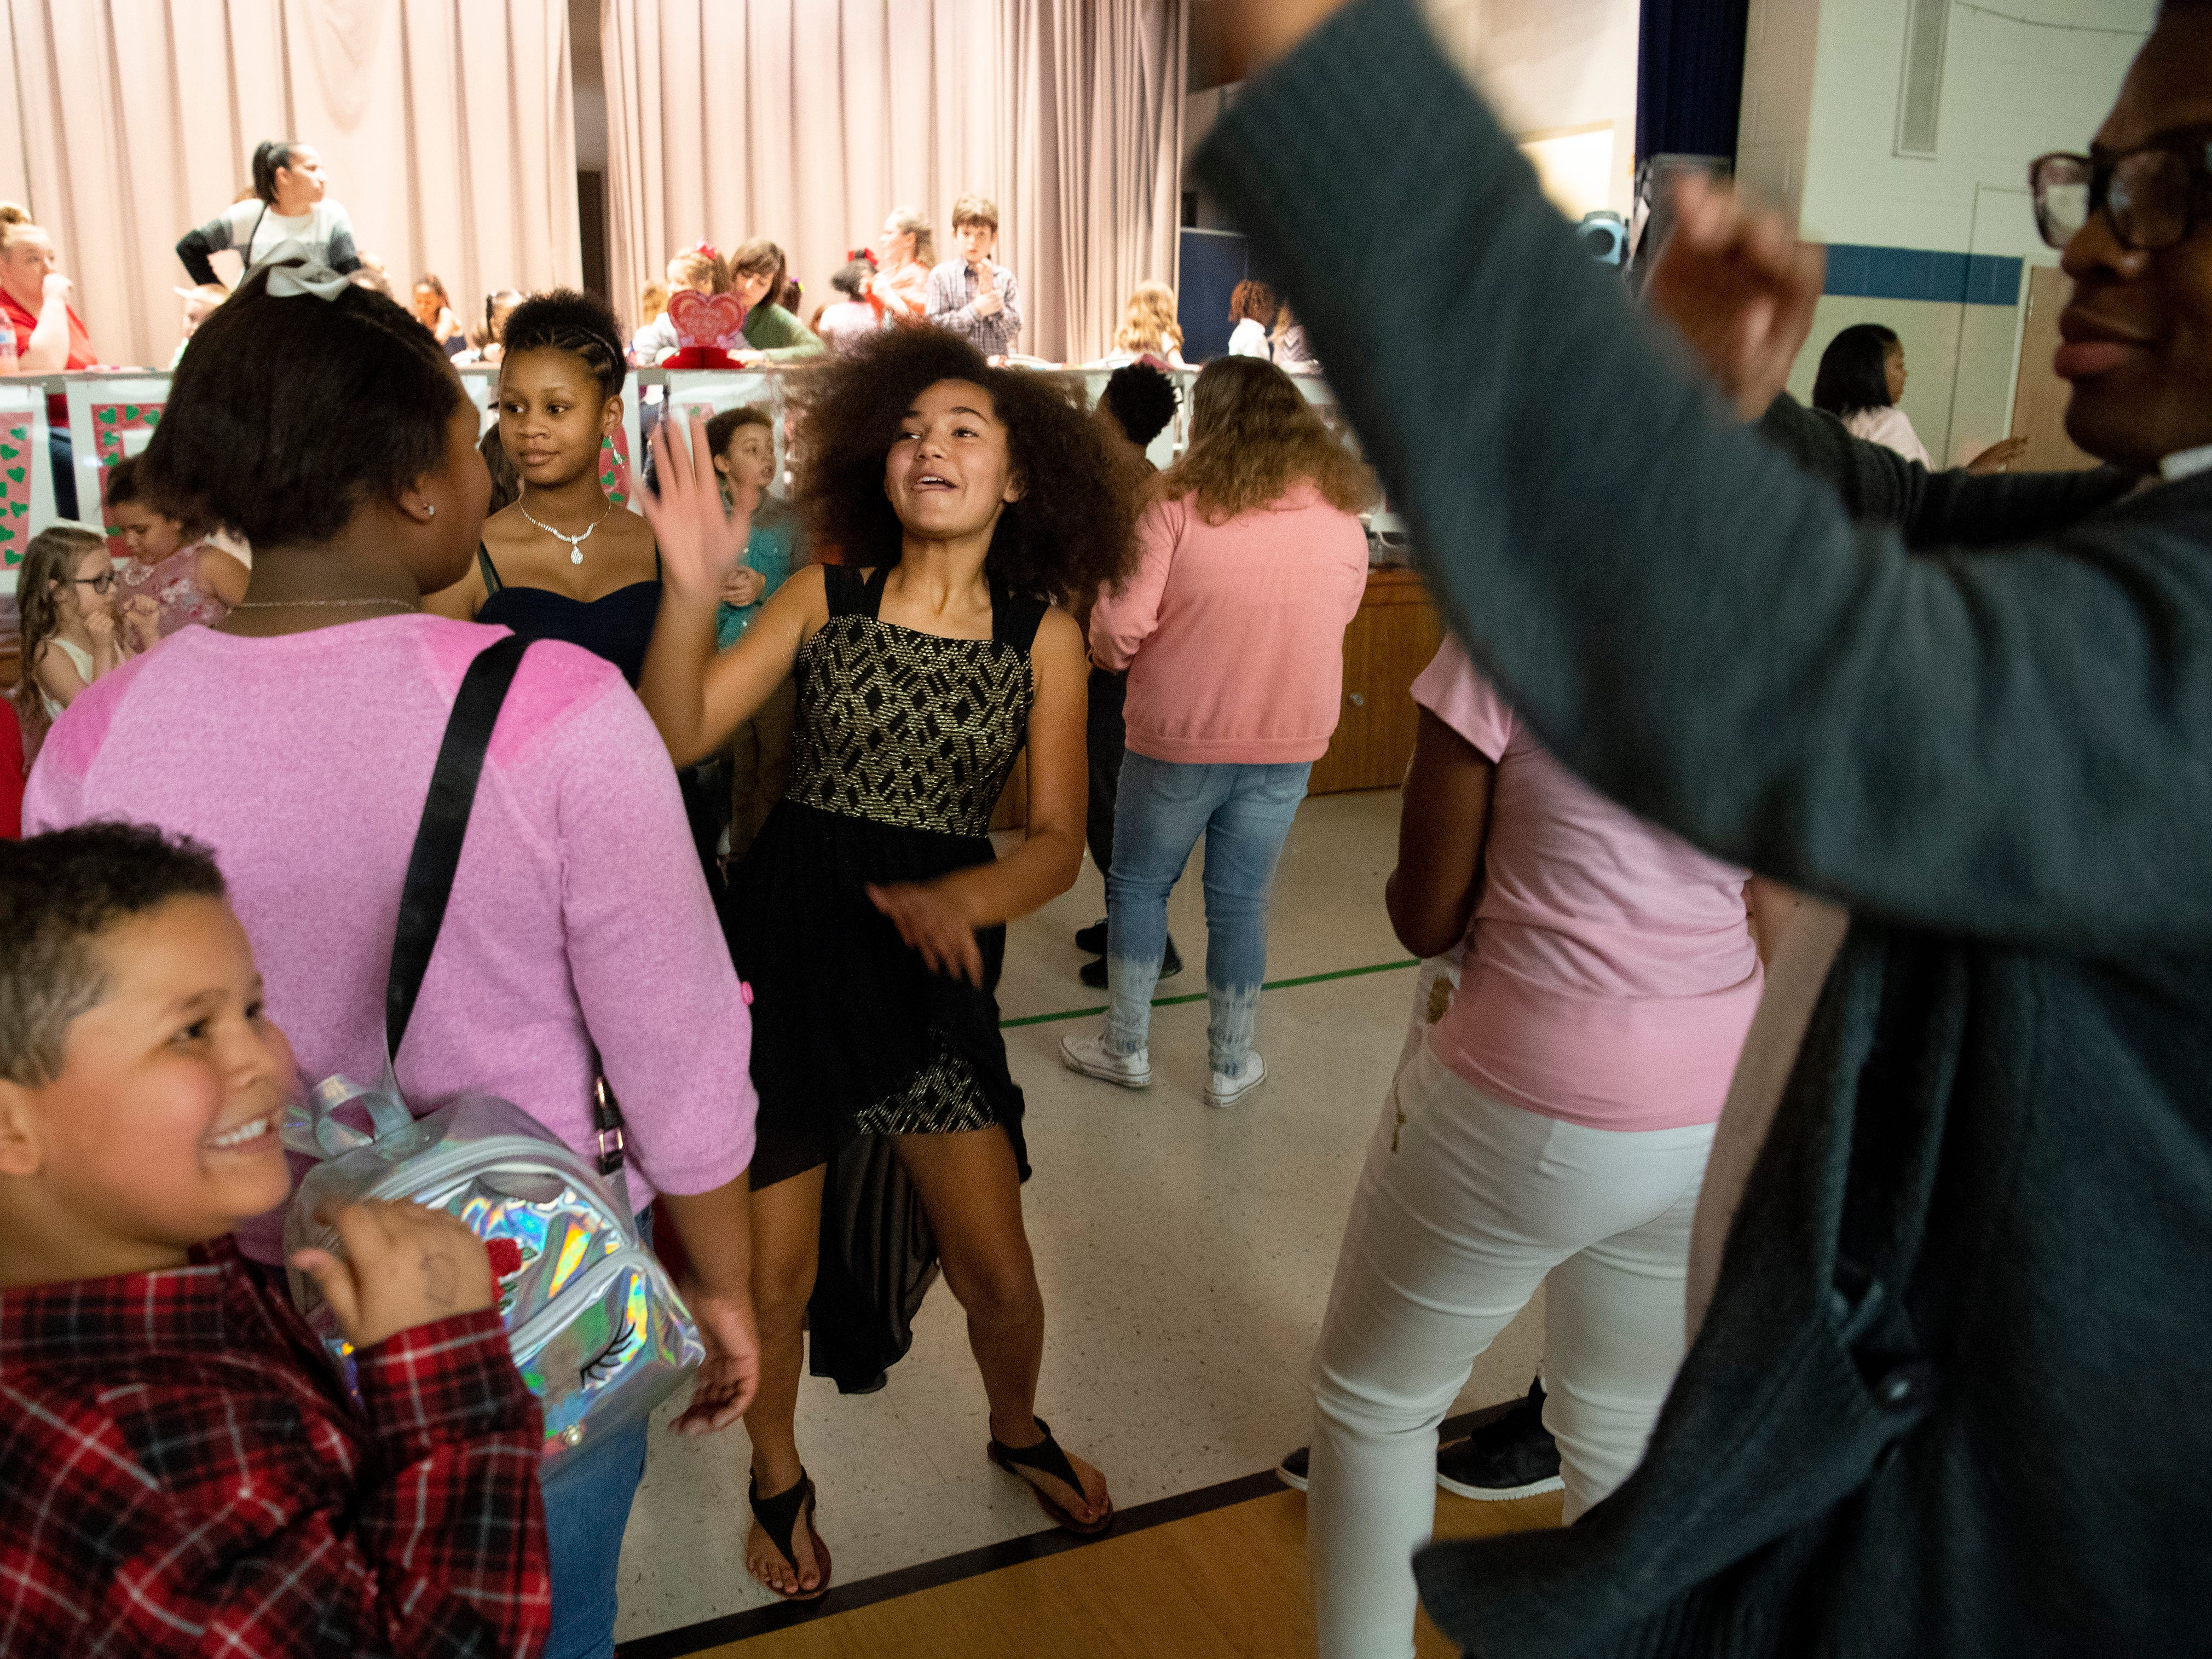 Students and their families show off a wide variety of dance moves during the Caze Elementary School Sweetheart Dance Tuesday night.